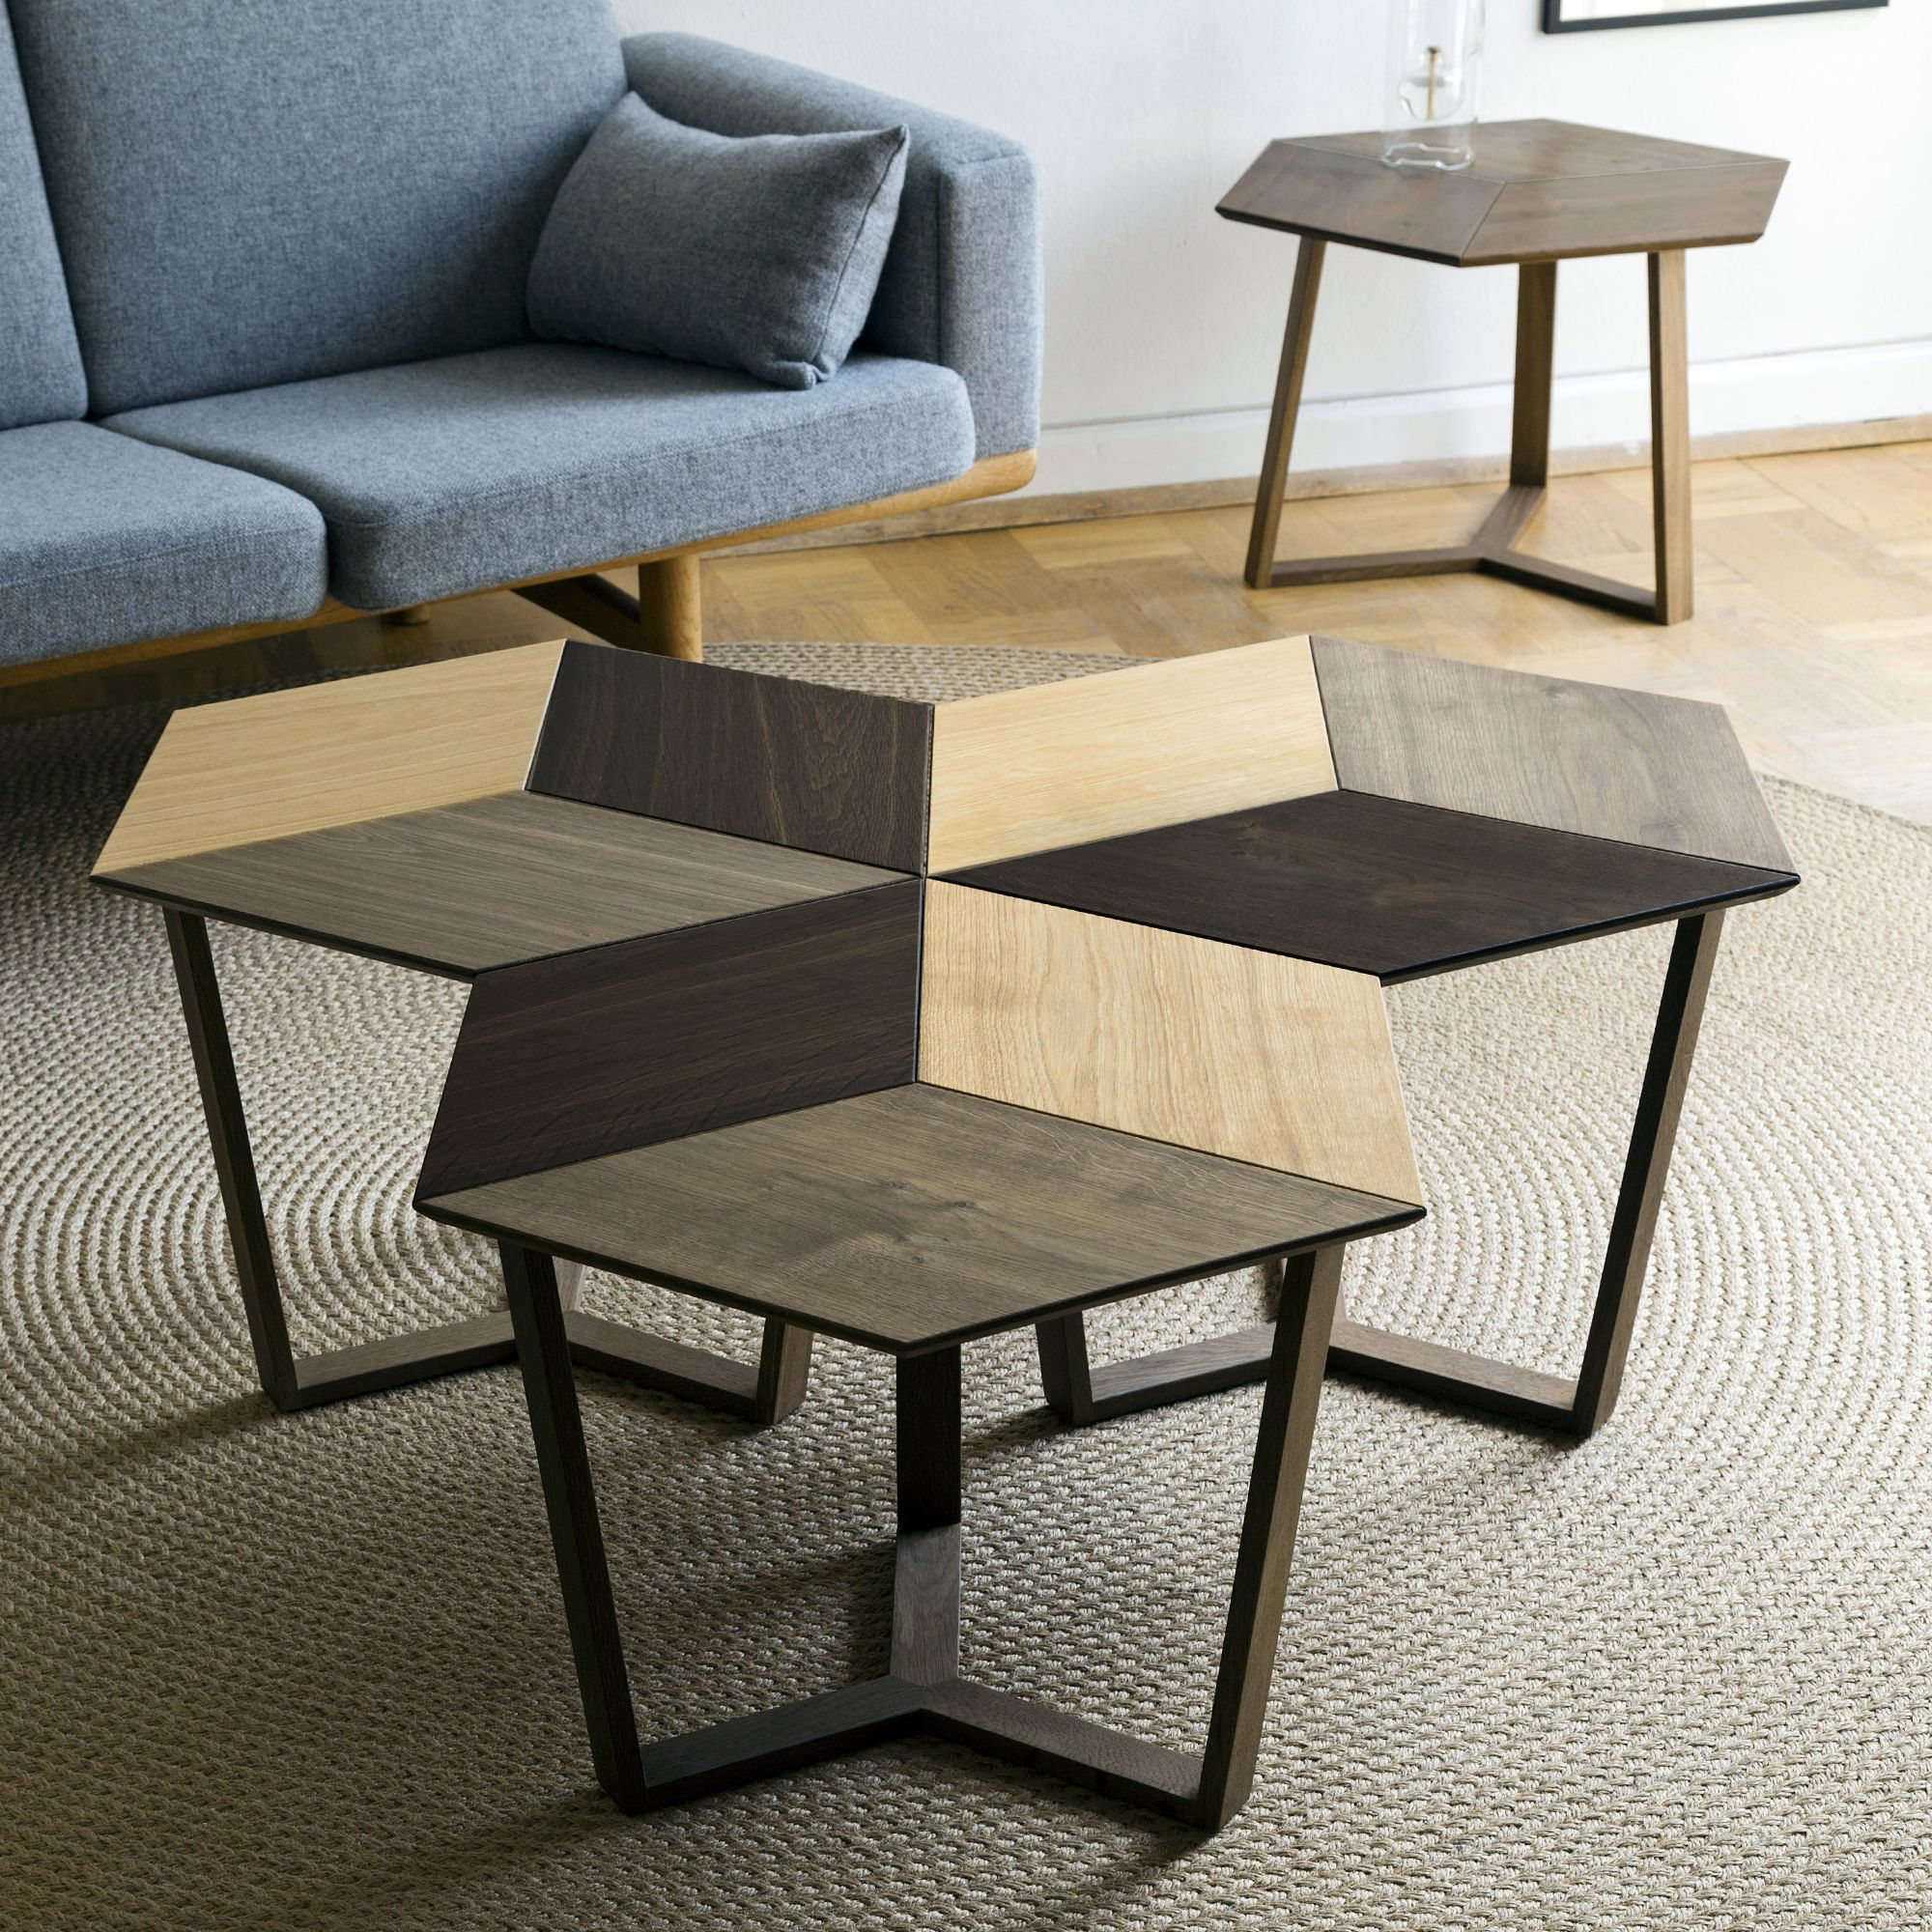 3 KANT coffeetable grouped together in 1 of many possible